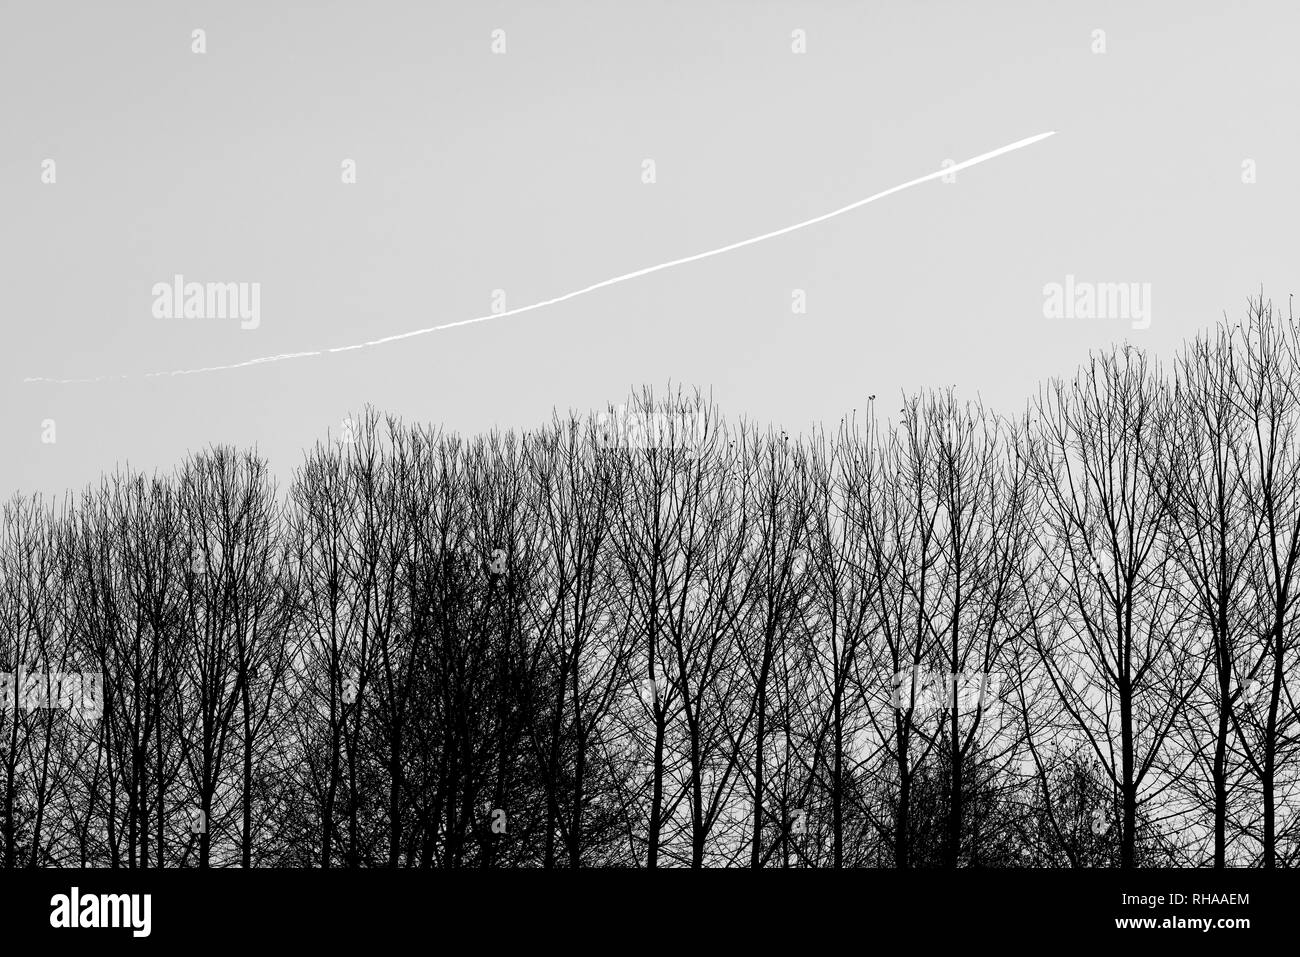 Plane wake turbulence - Stock Image